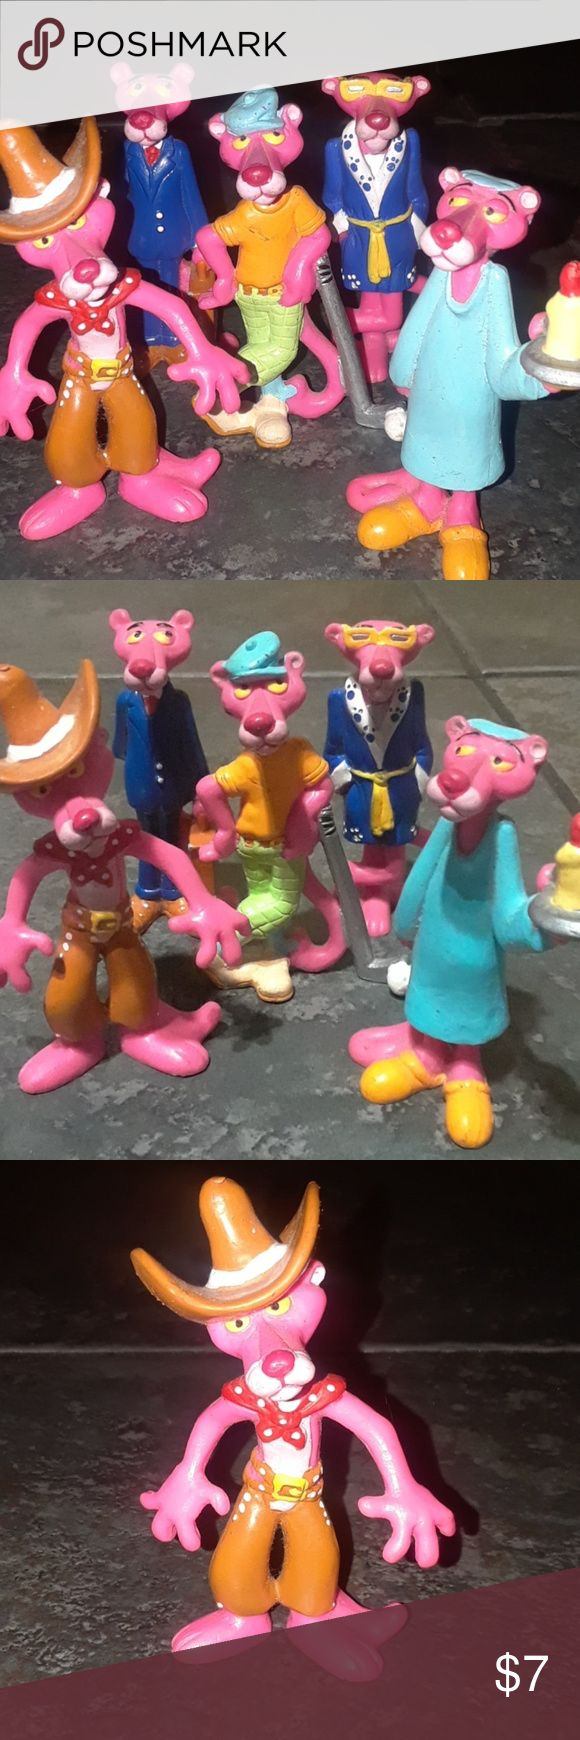 VINTAGE 1989 Pink Panther Figurines Toys Dolls 80s #1 Business #2 Golf #3 Cowboy #4 Robe & glasses #5 Nightgown & Candle  Vintage Pink Panther Figurines Marked 1989 on the bottom. Some show wear (see pics) Otherwise great condition!   These have only been stored through the years, never played with.  Check my other listings to bundle more 80's collectibles! Bundle and save on shipping!  One figure for $7 All five figures $25 (comes out yo $5 each and saves you on shipping)  ** Contact me…